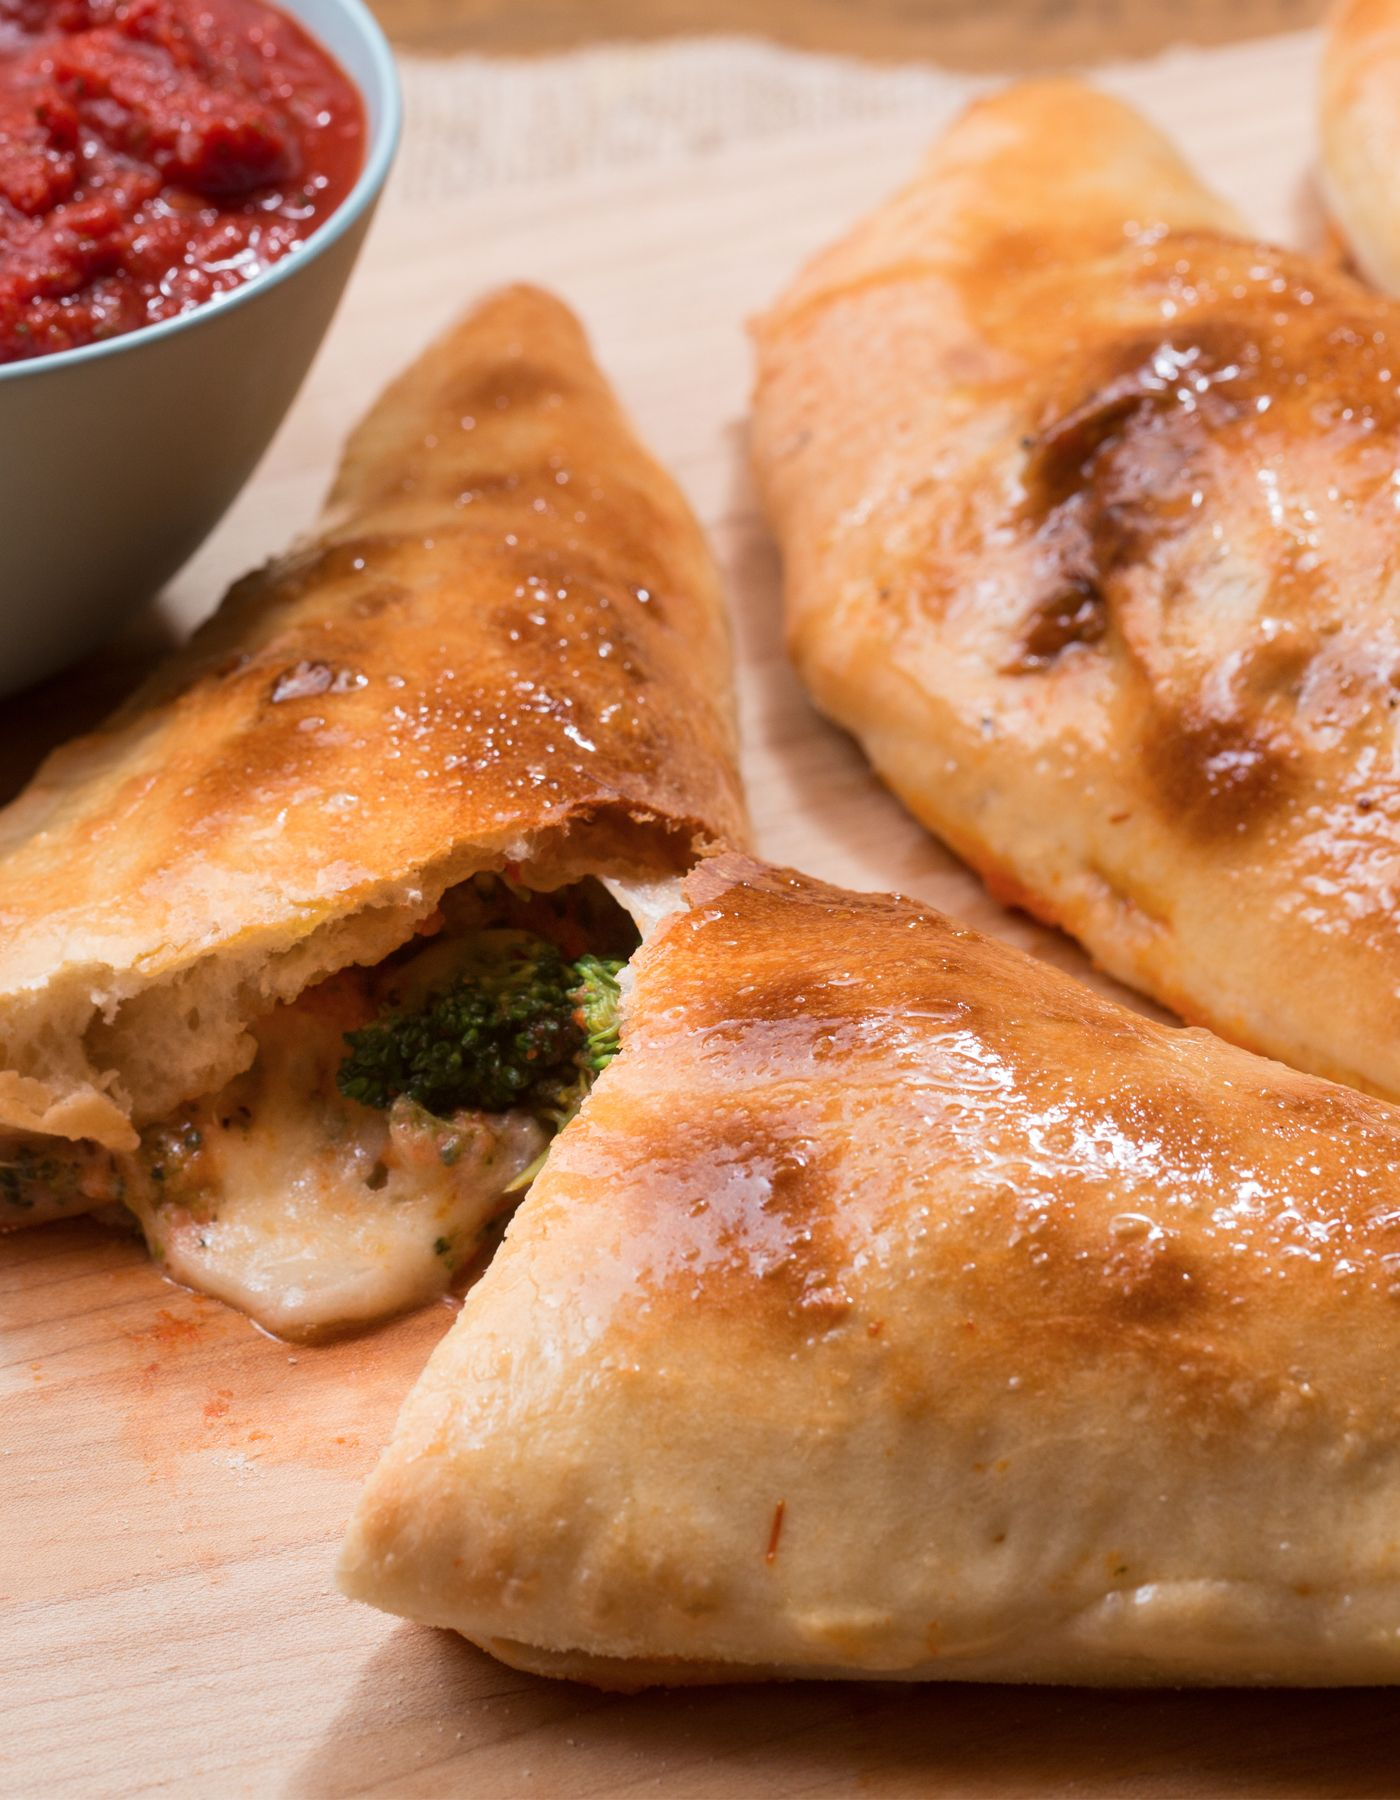 Blue apron broccoli - Cheesy Broccoli Calzones With Tomato Dipping Sauce